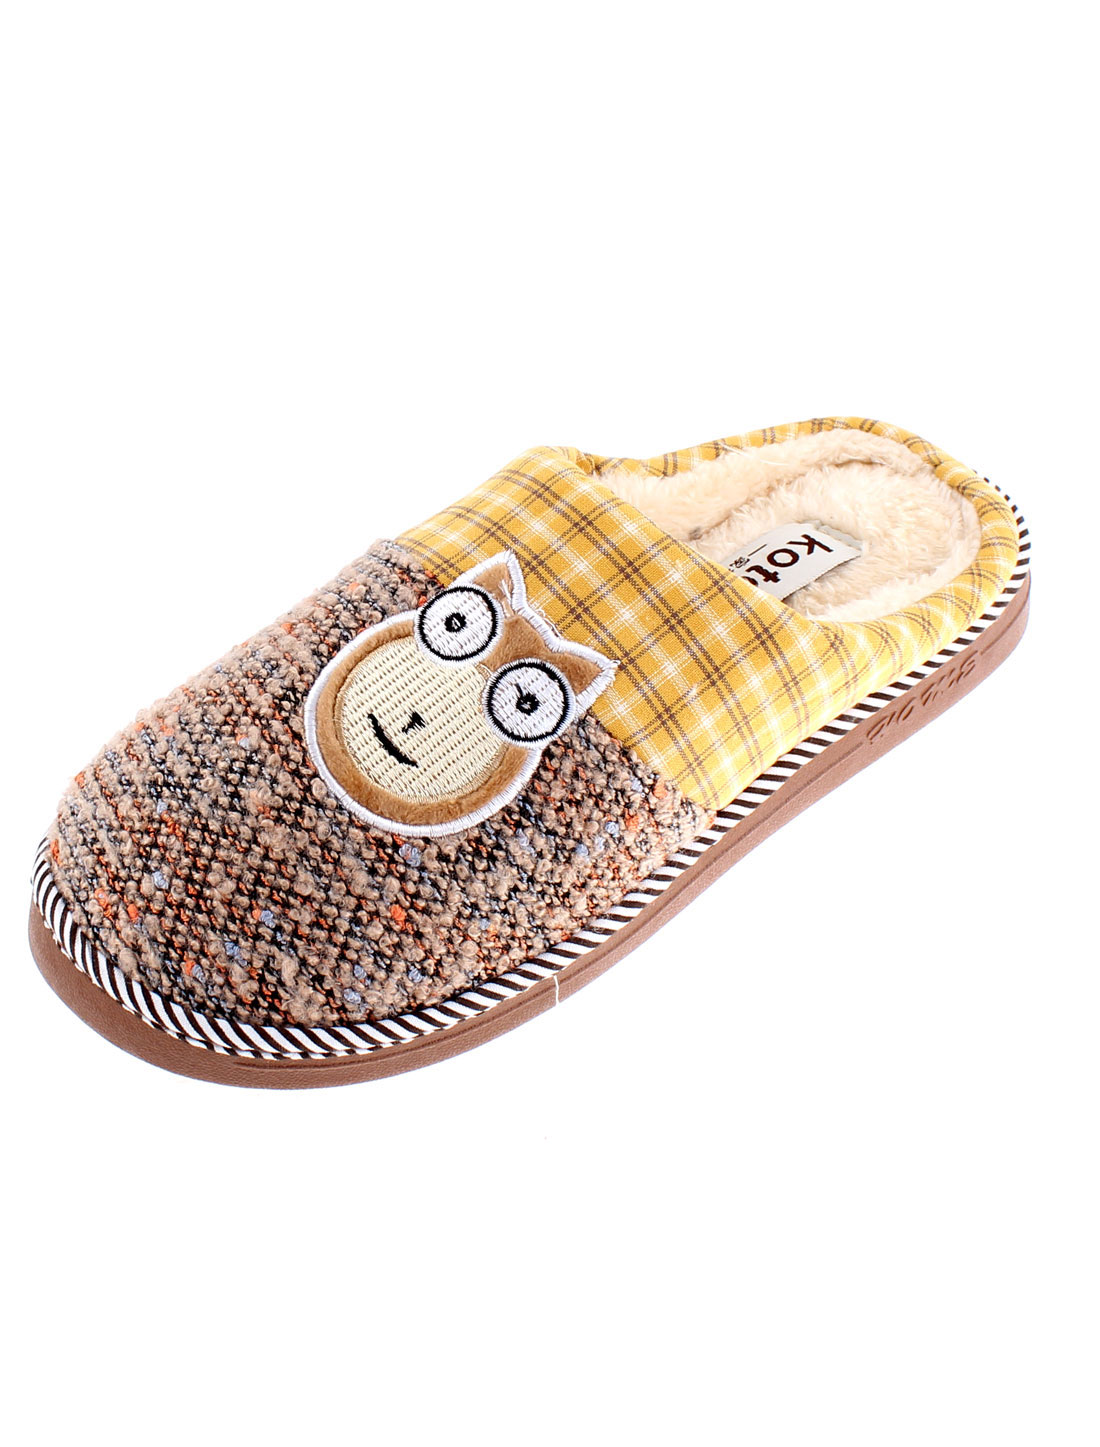 Home Cat Embroidery Anti Slip Warmer Slippers for Women Brown US 9.5